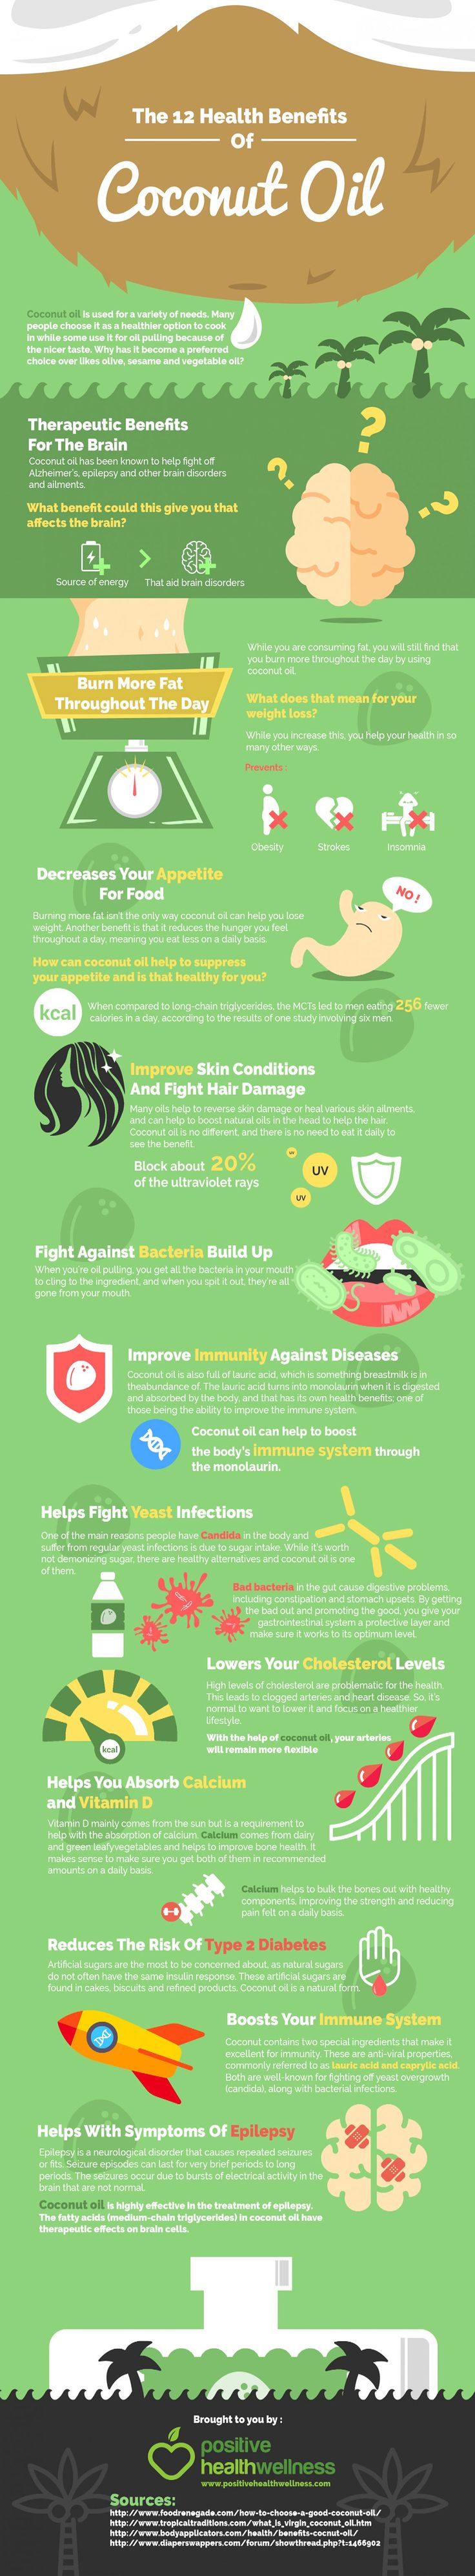 Health Benefits of Coconut Oil Infographic. Topic: skincare, healthy, facts, hair, haircare, skin, ntrition, cooking oil, extra virgin coconut oil.